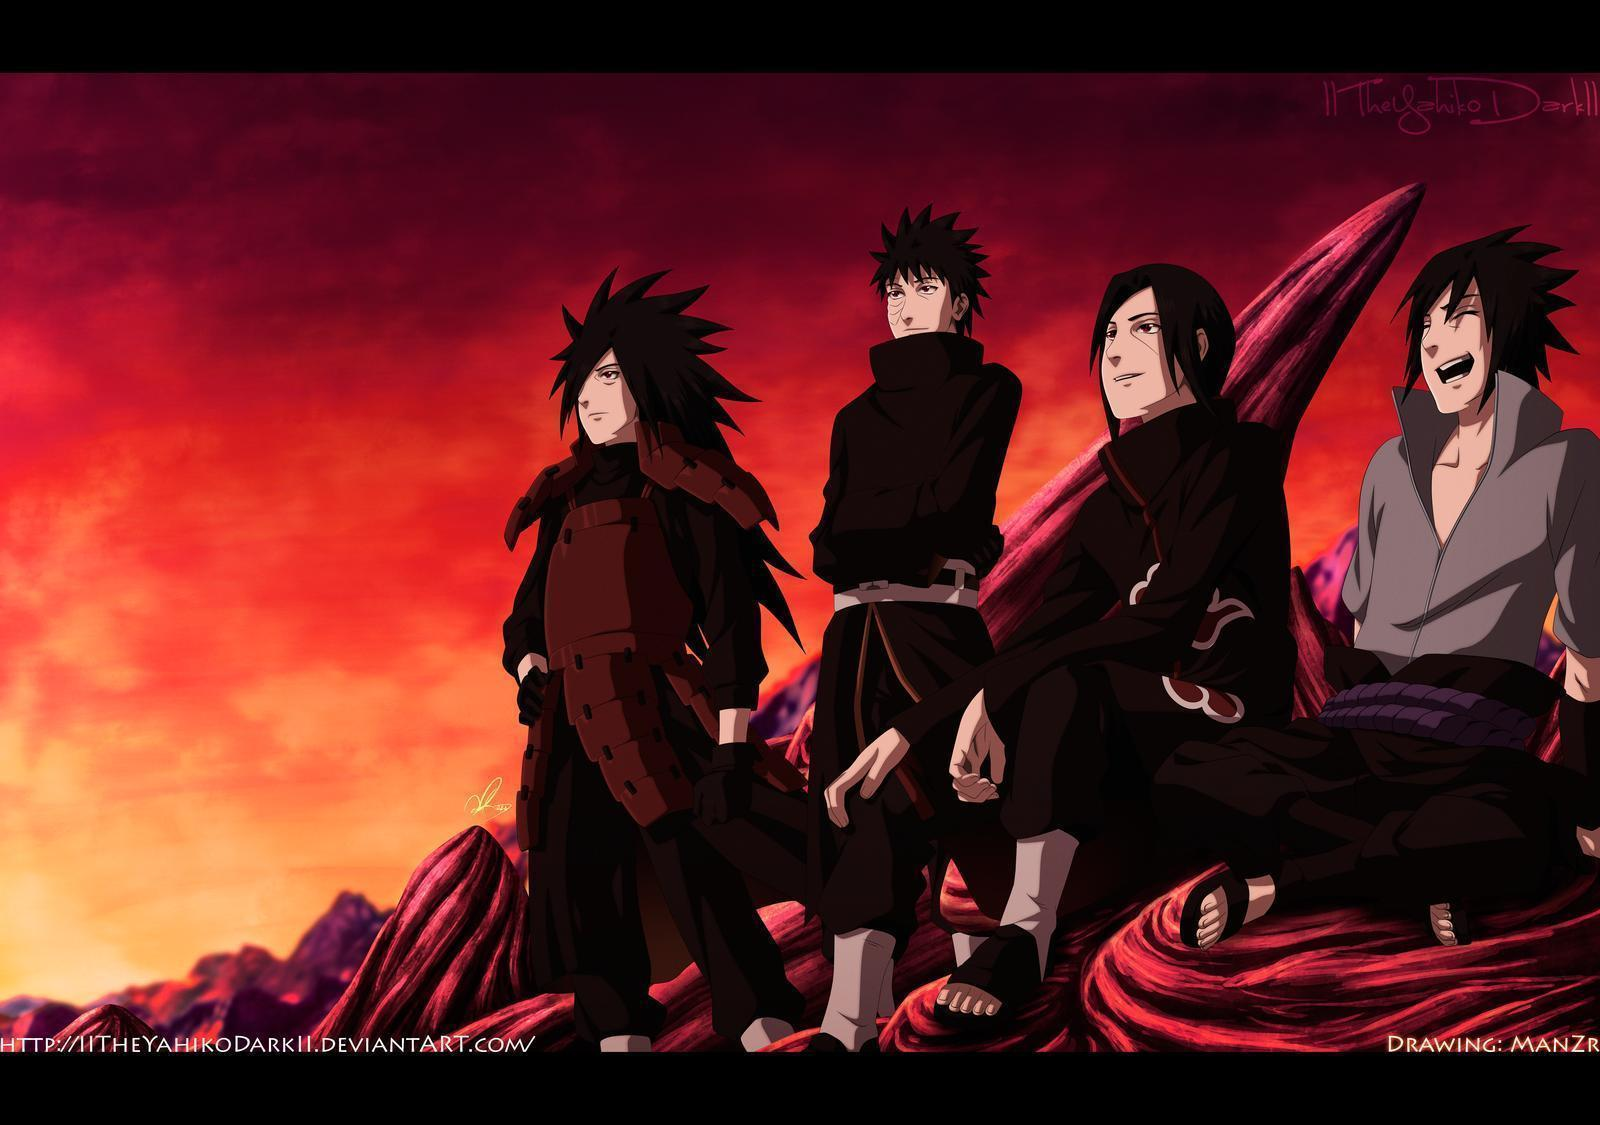 Uchiha Clan Wallpapers Wallpaper Cave HD Wallpapers Download Free Images Wallpaper [1000image.com]